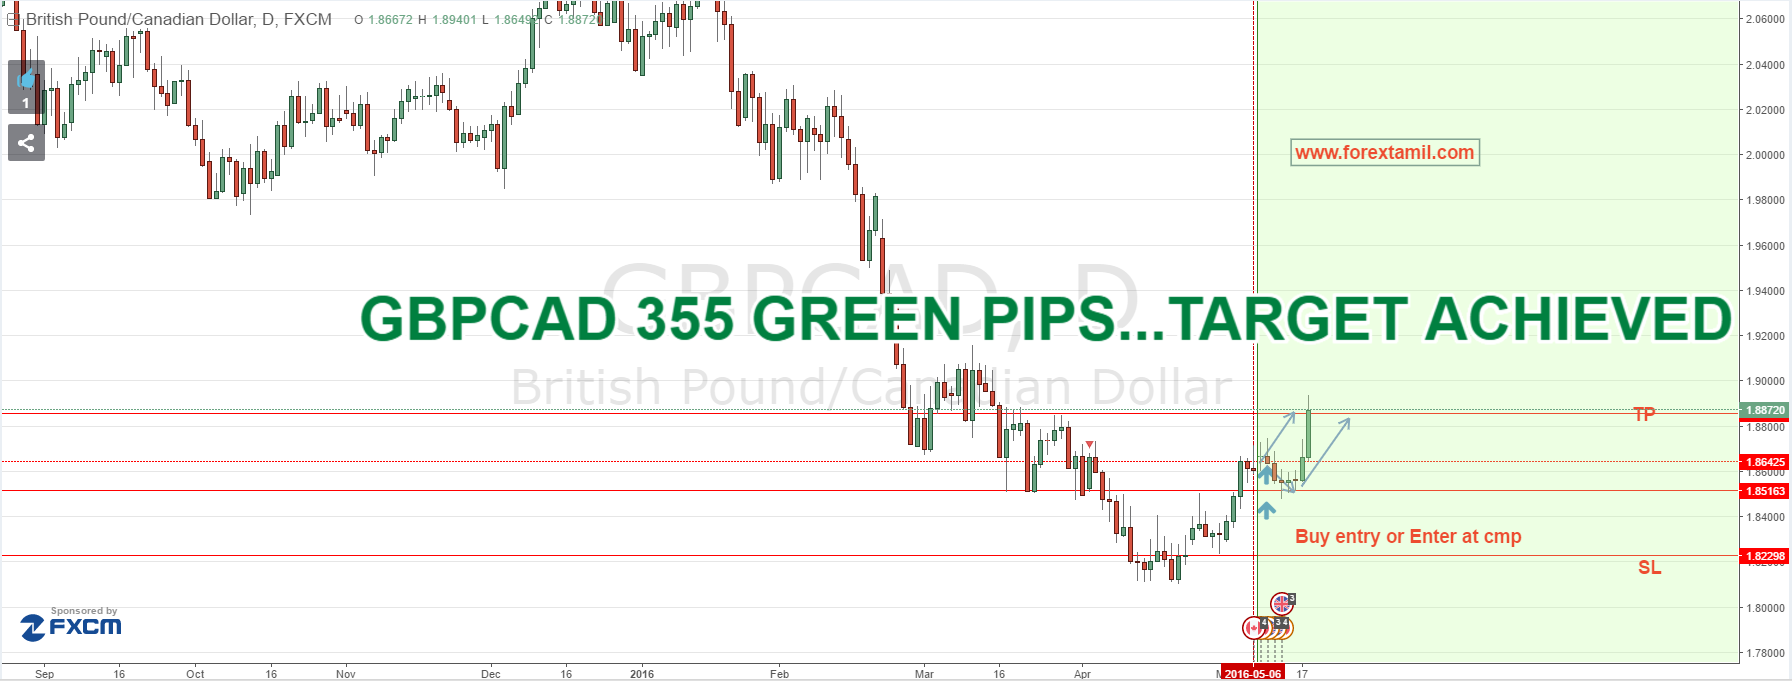 SURE SHOT SIGNAL RESULT: GBP/CAD 355 GREEN PIPS….TARGET ACHIEVED